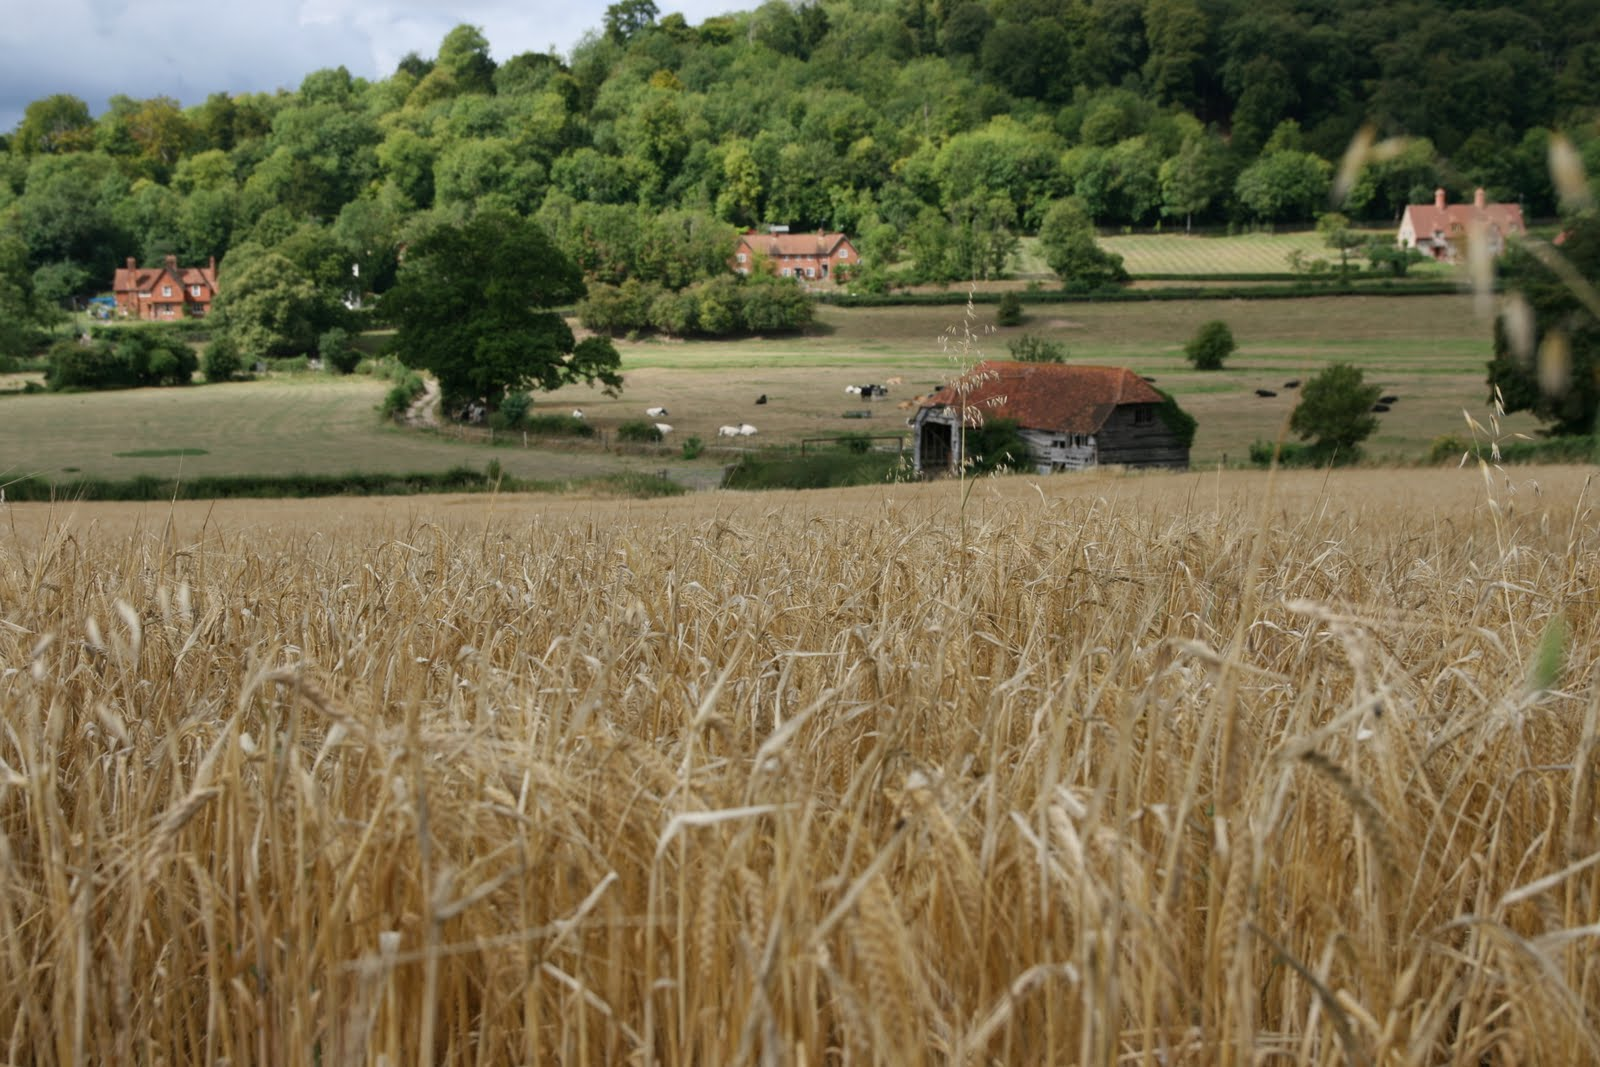 1008 004 Henley via Hambleden Circular, The Thames Valley, England Across the field to the barn